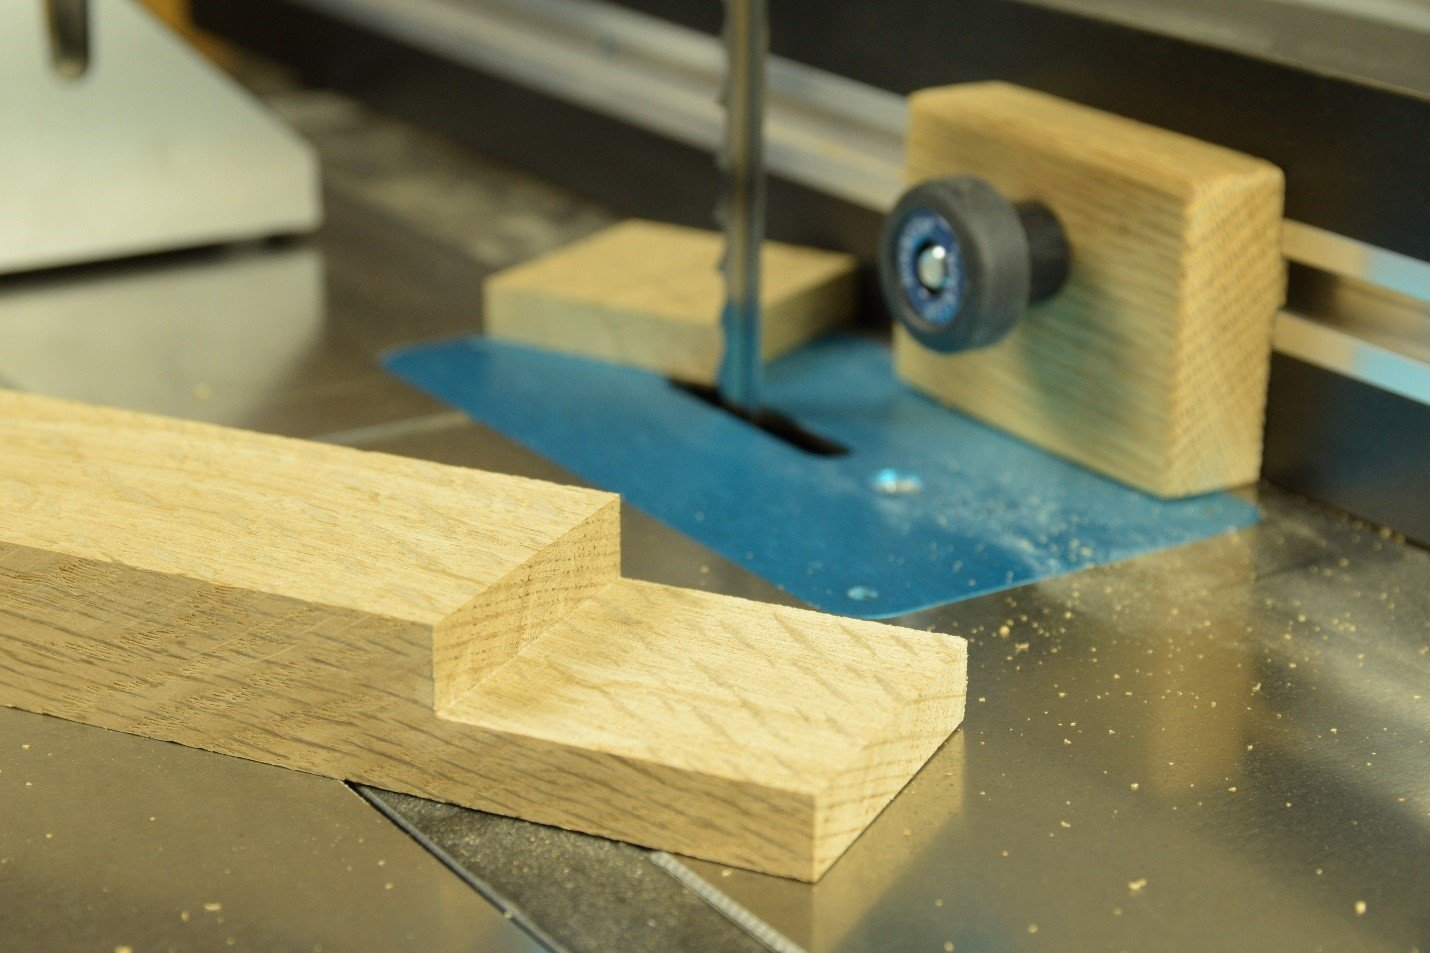 Precise cut with no sanding required